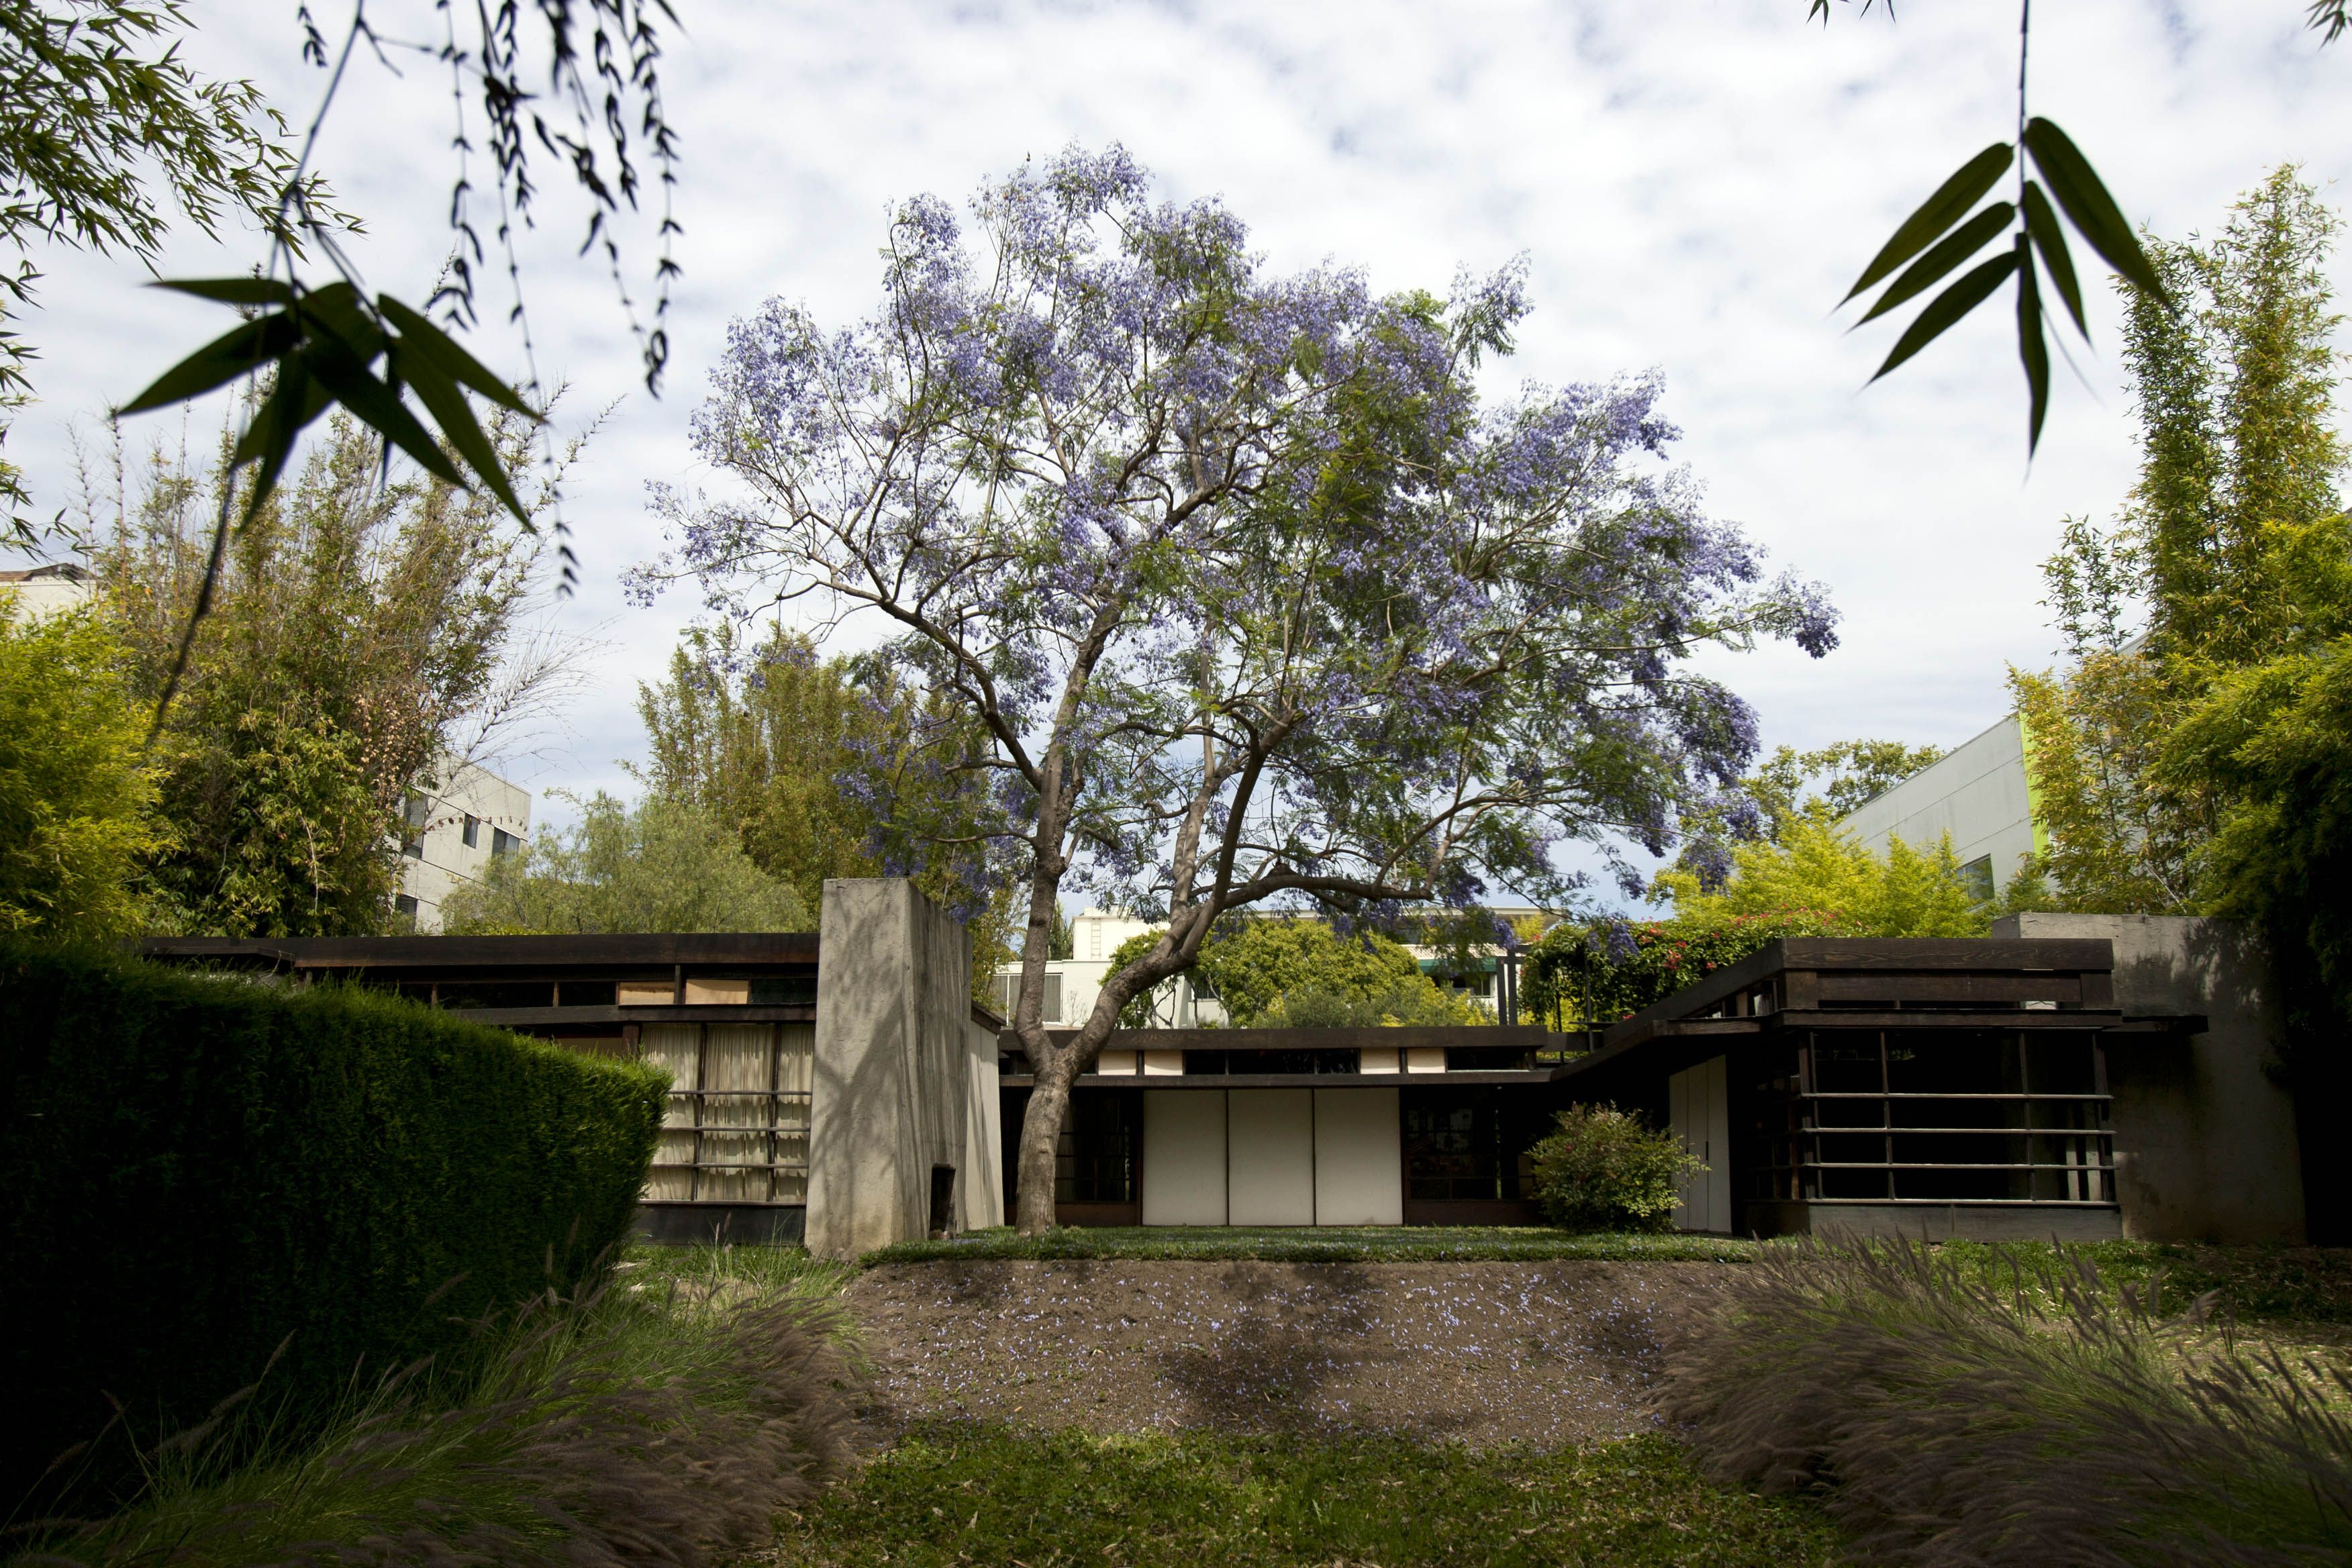 The 1922 Schindler House in Los Angeles, California